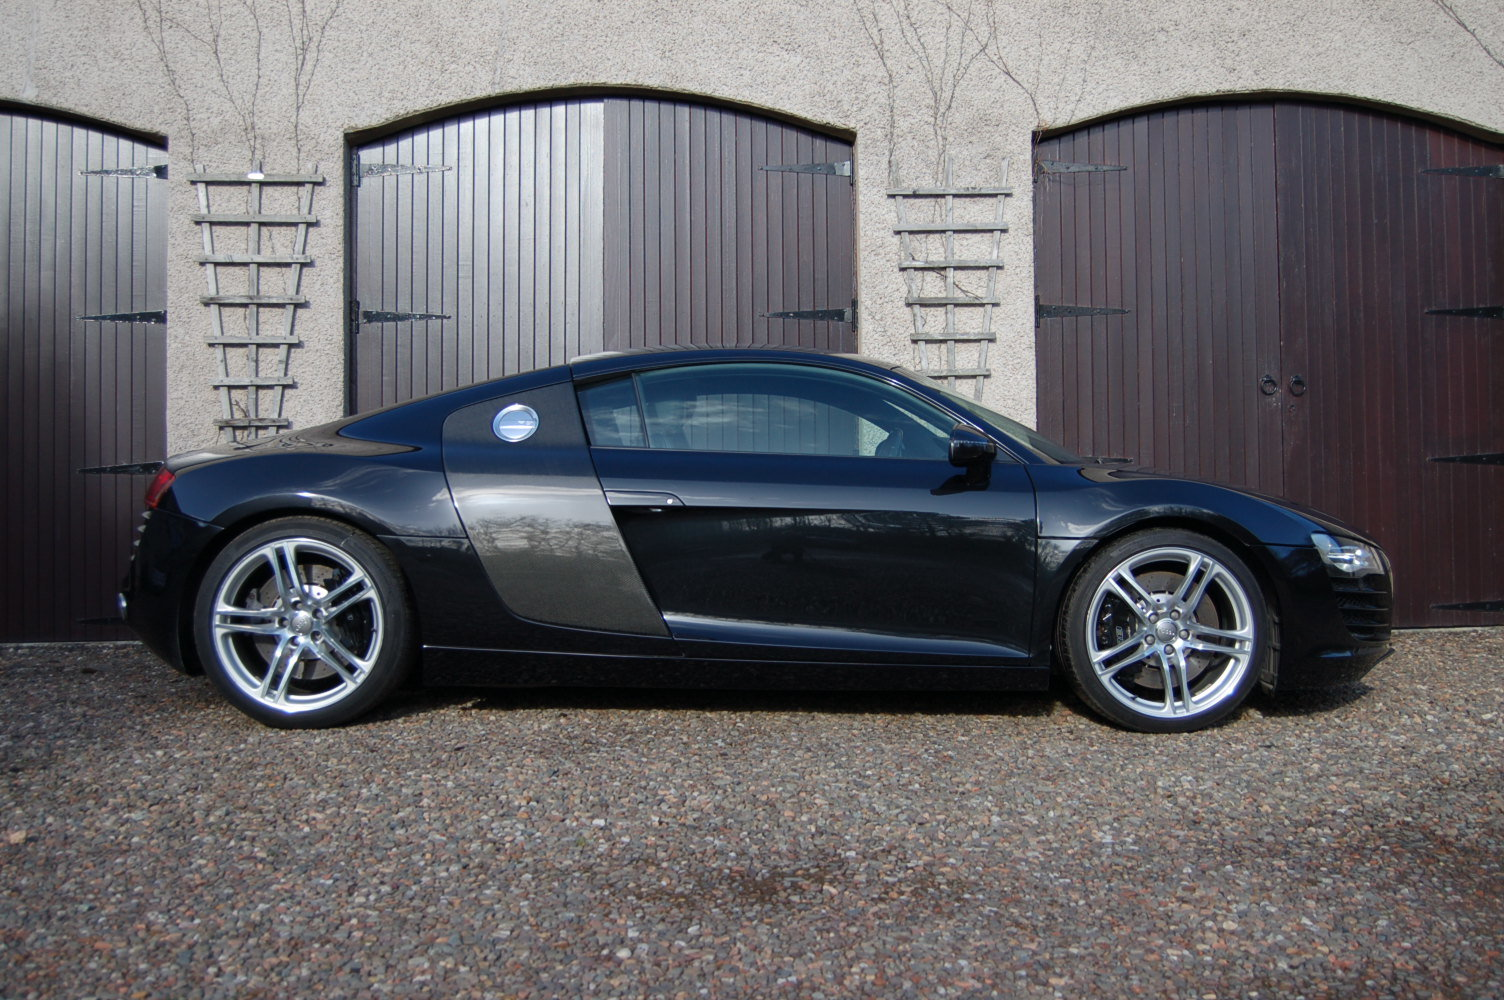 2008 Audi R8 Manual For Sale (picture 1 of 6)